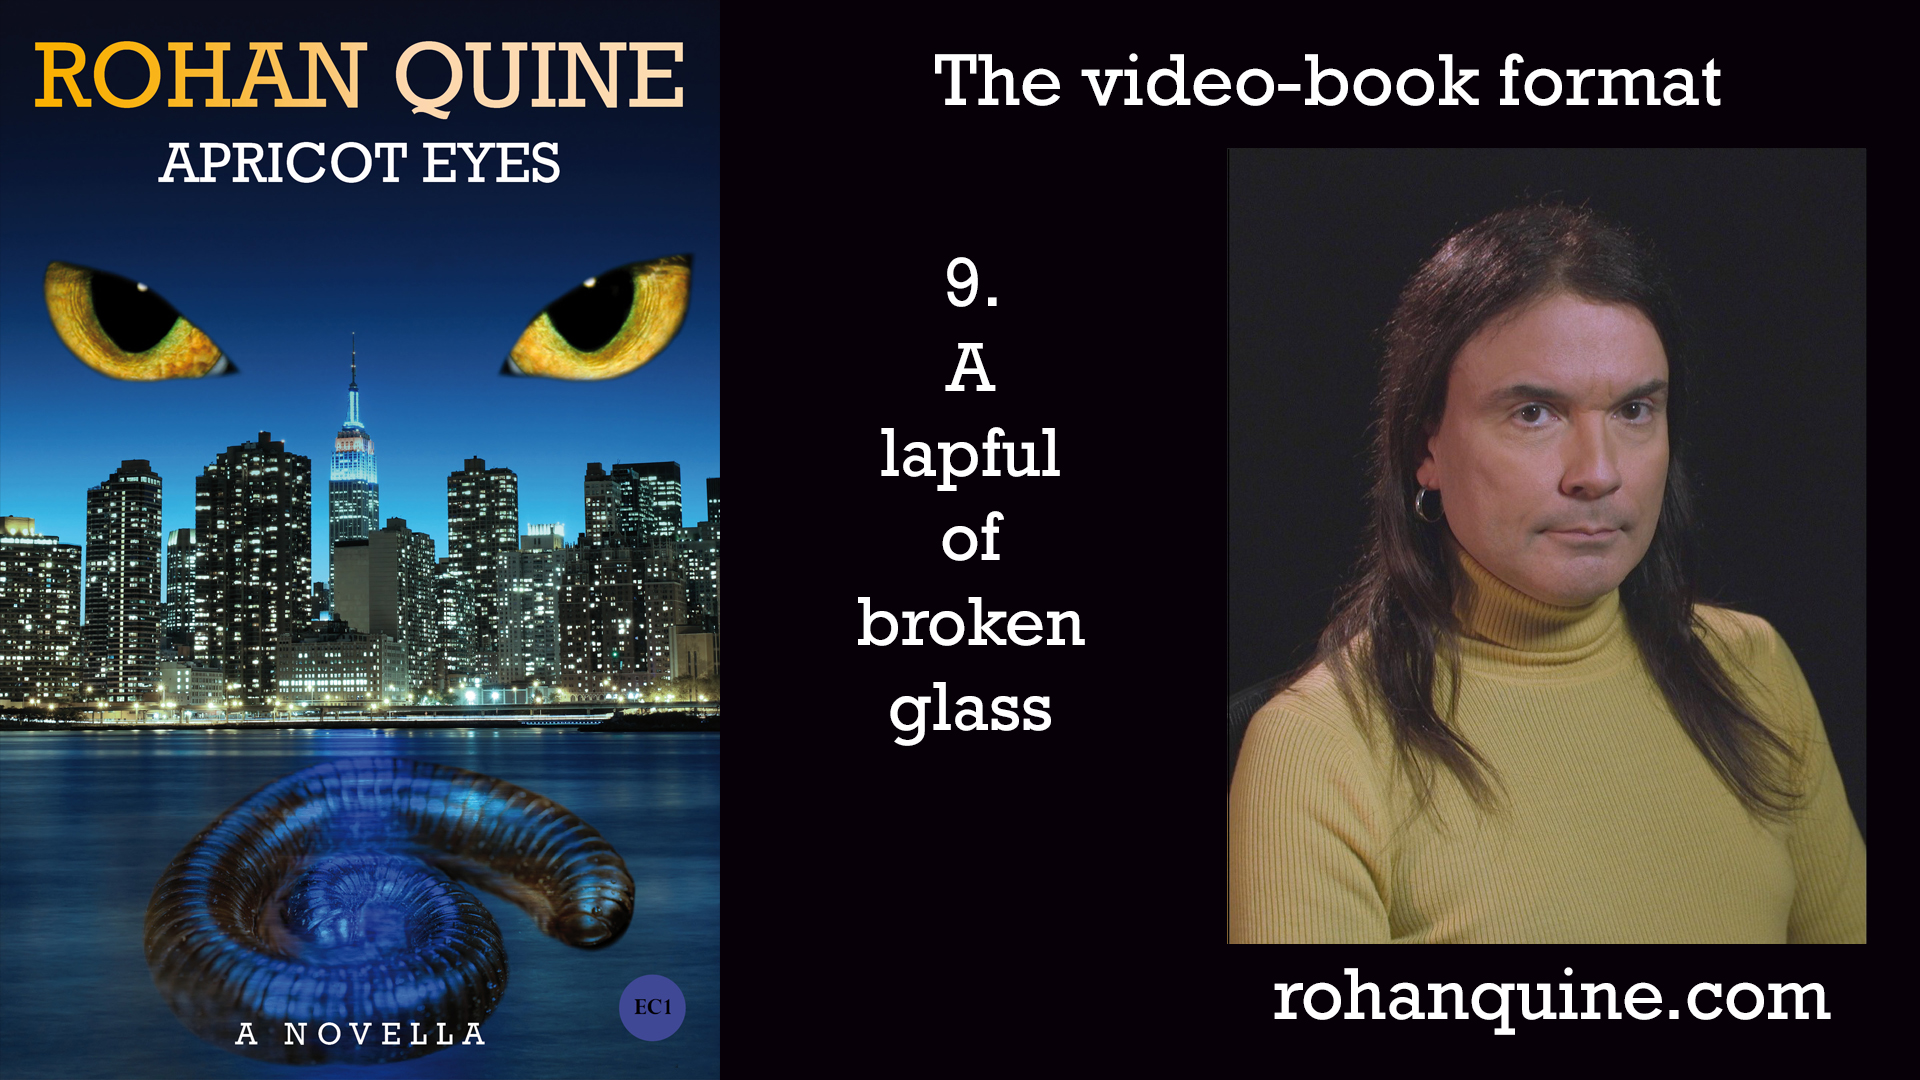 APRICOT EYES by Rohan Quine - video-book format - chapter 9